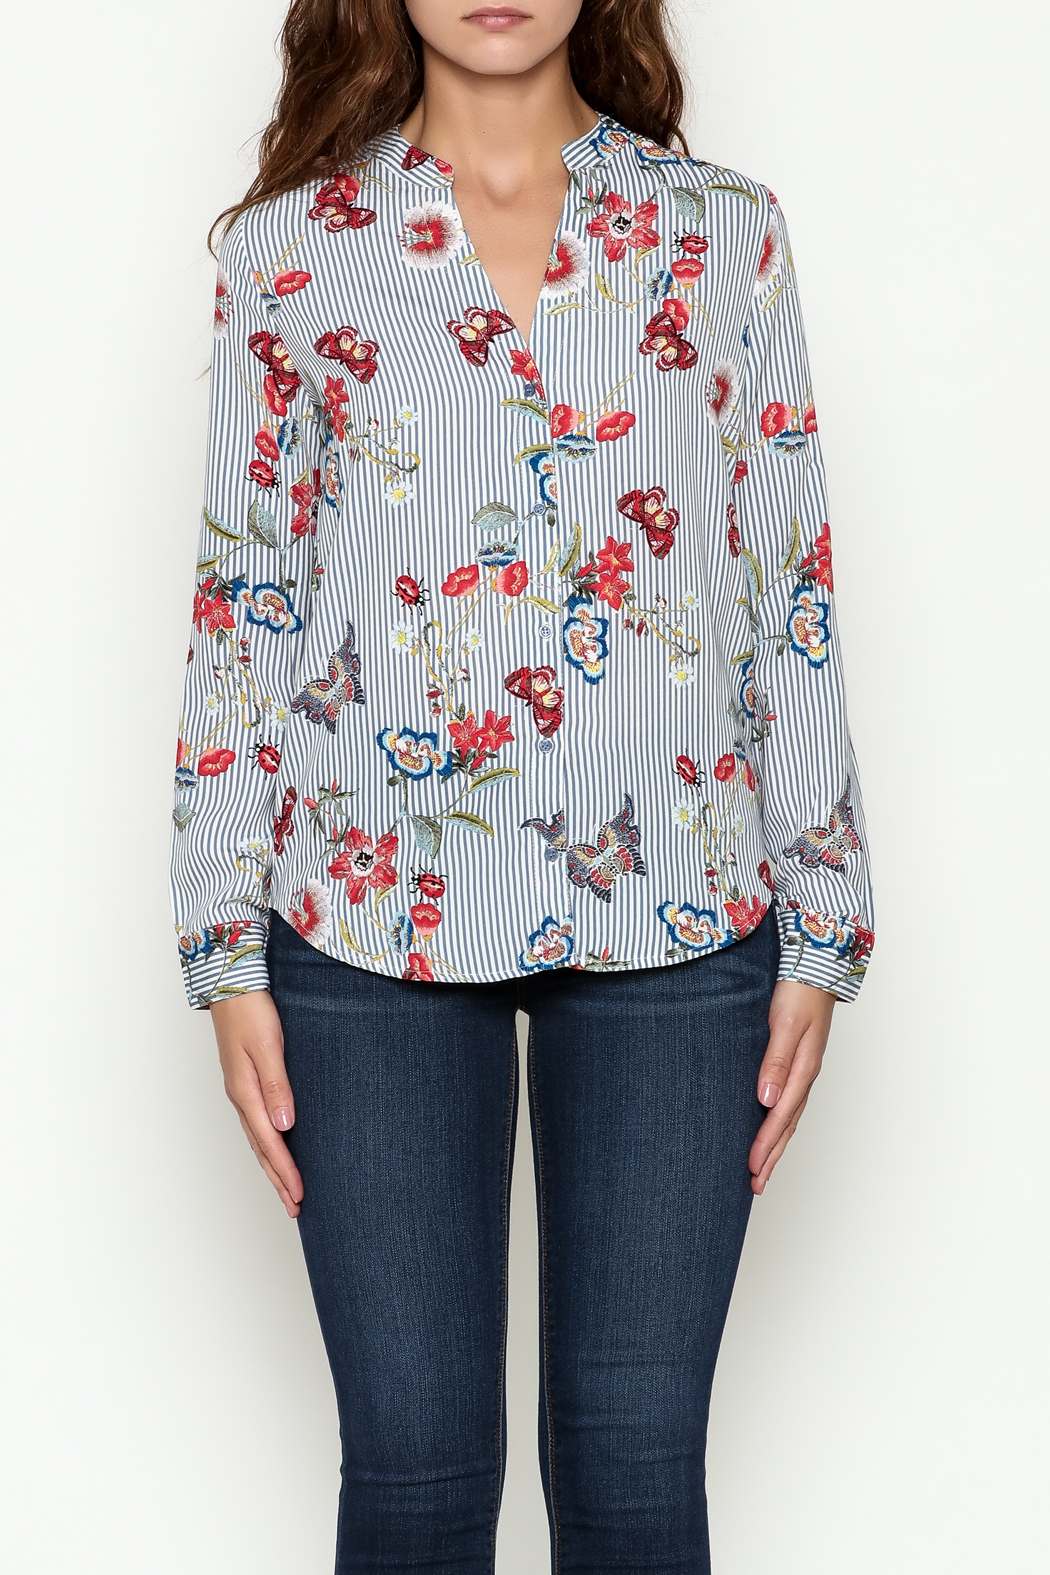 OVI Butterfly Striped Blouse - Front Full Image